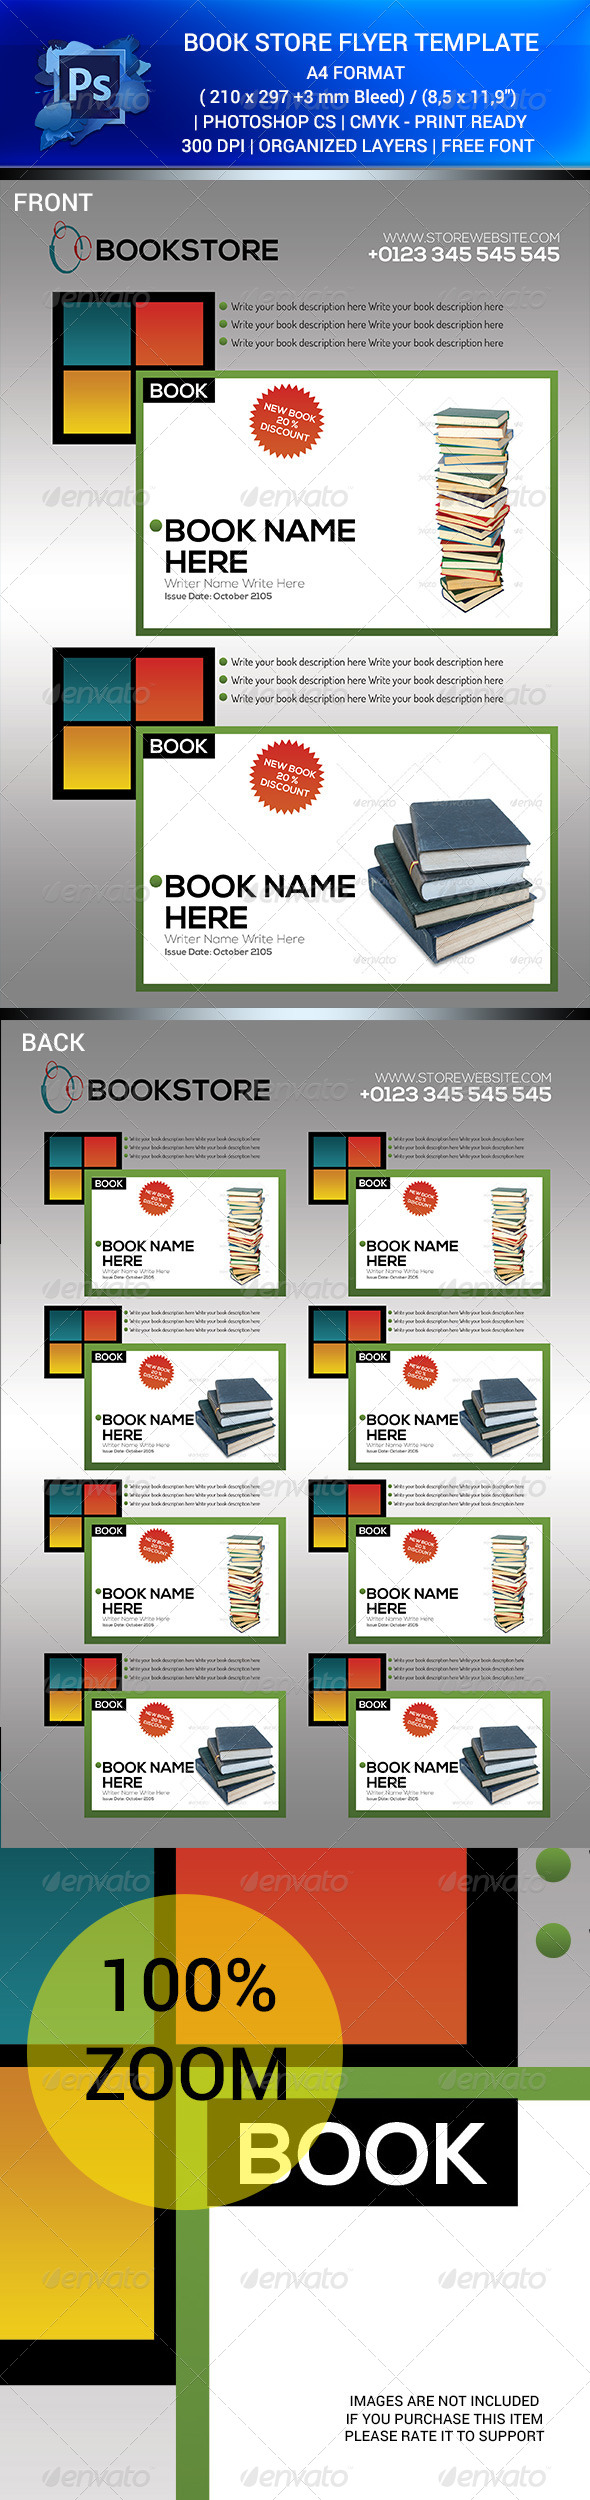 GraphicRiver BOOK STORE SALES FLYER TEMPALET V.1 PSD 6413773